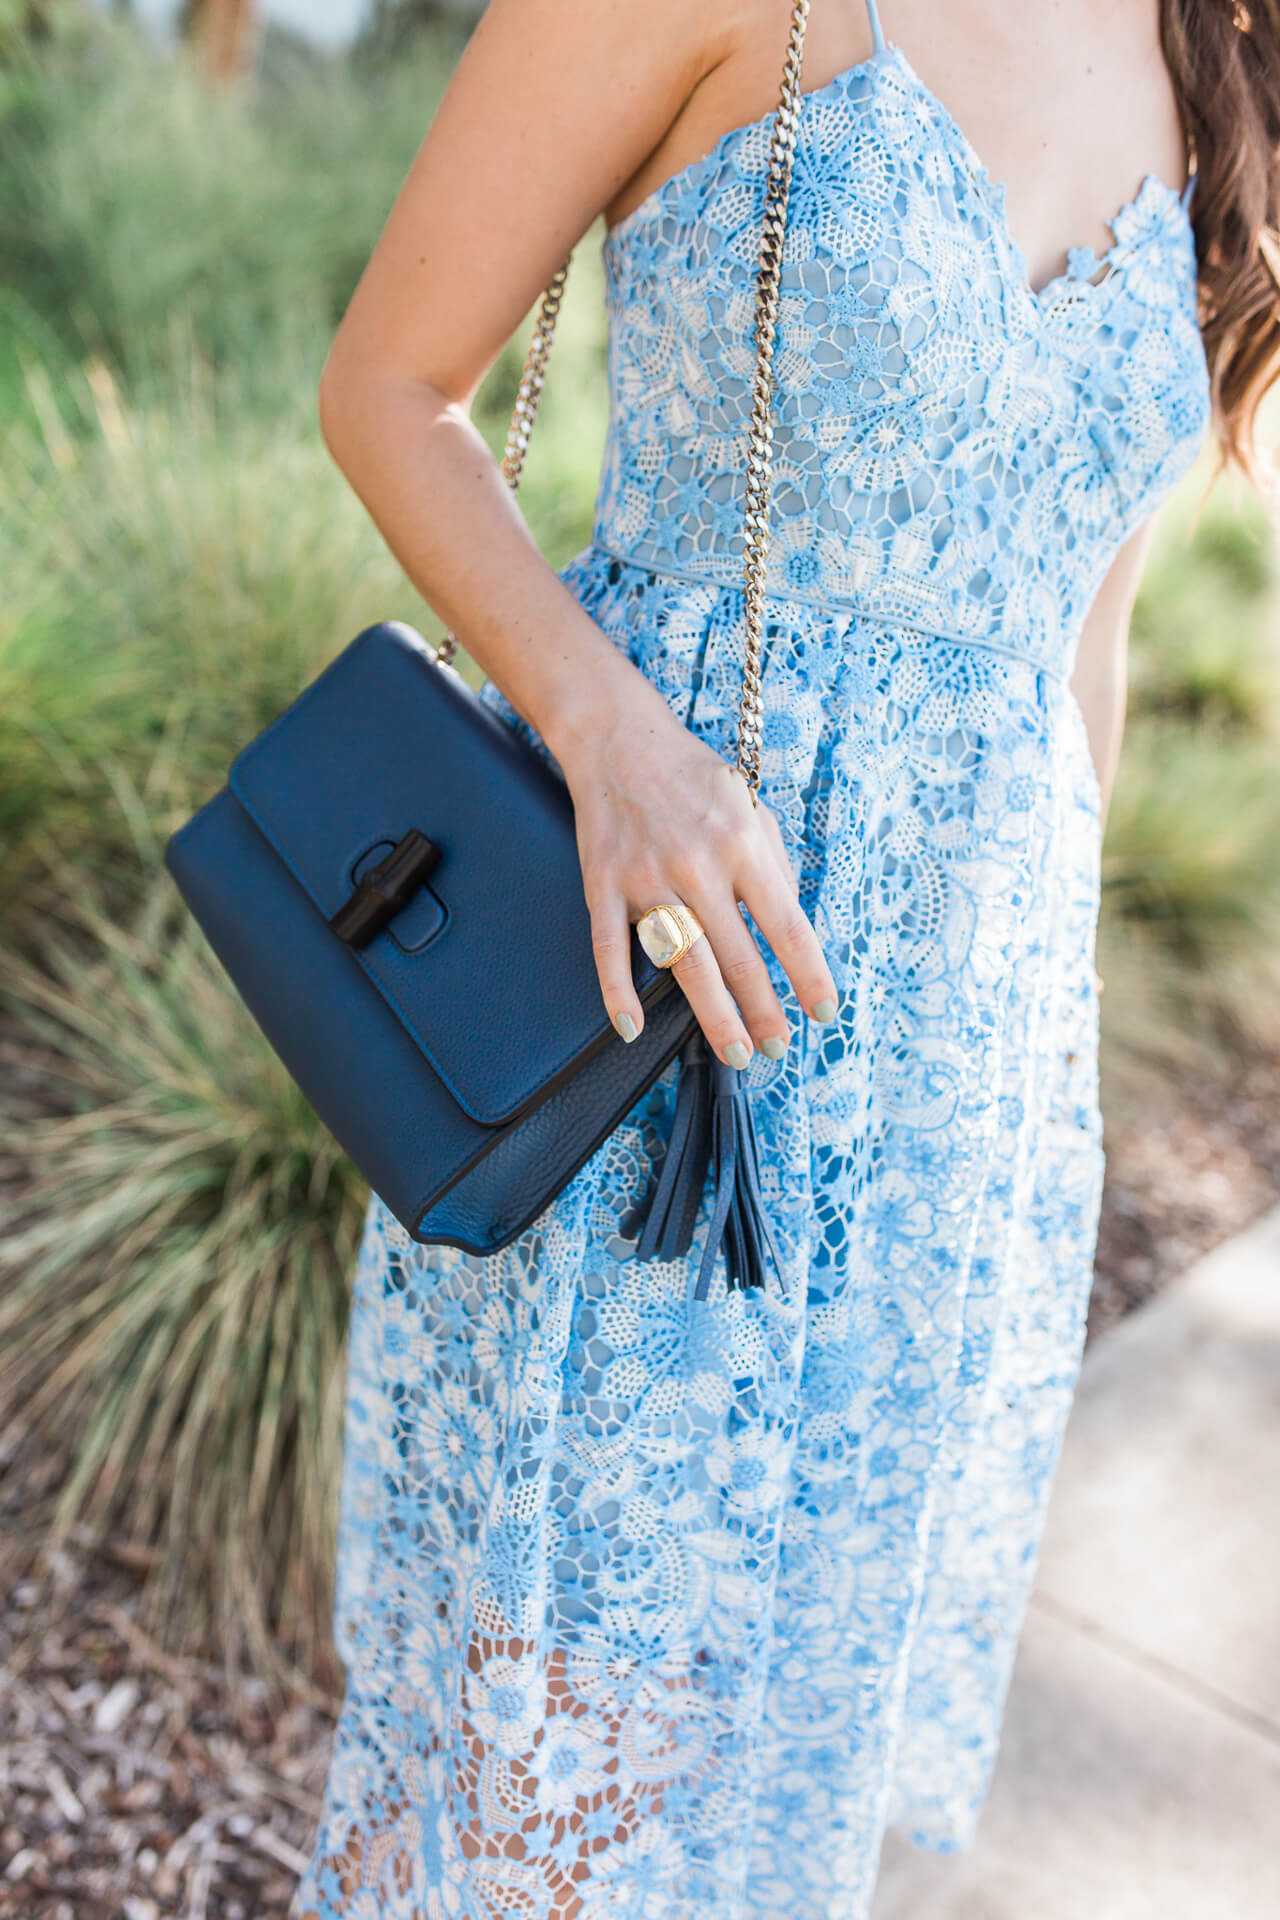 This navy blue crossbody bag is so chic! | M Loves M @marmar